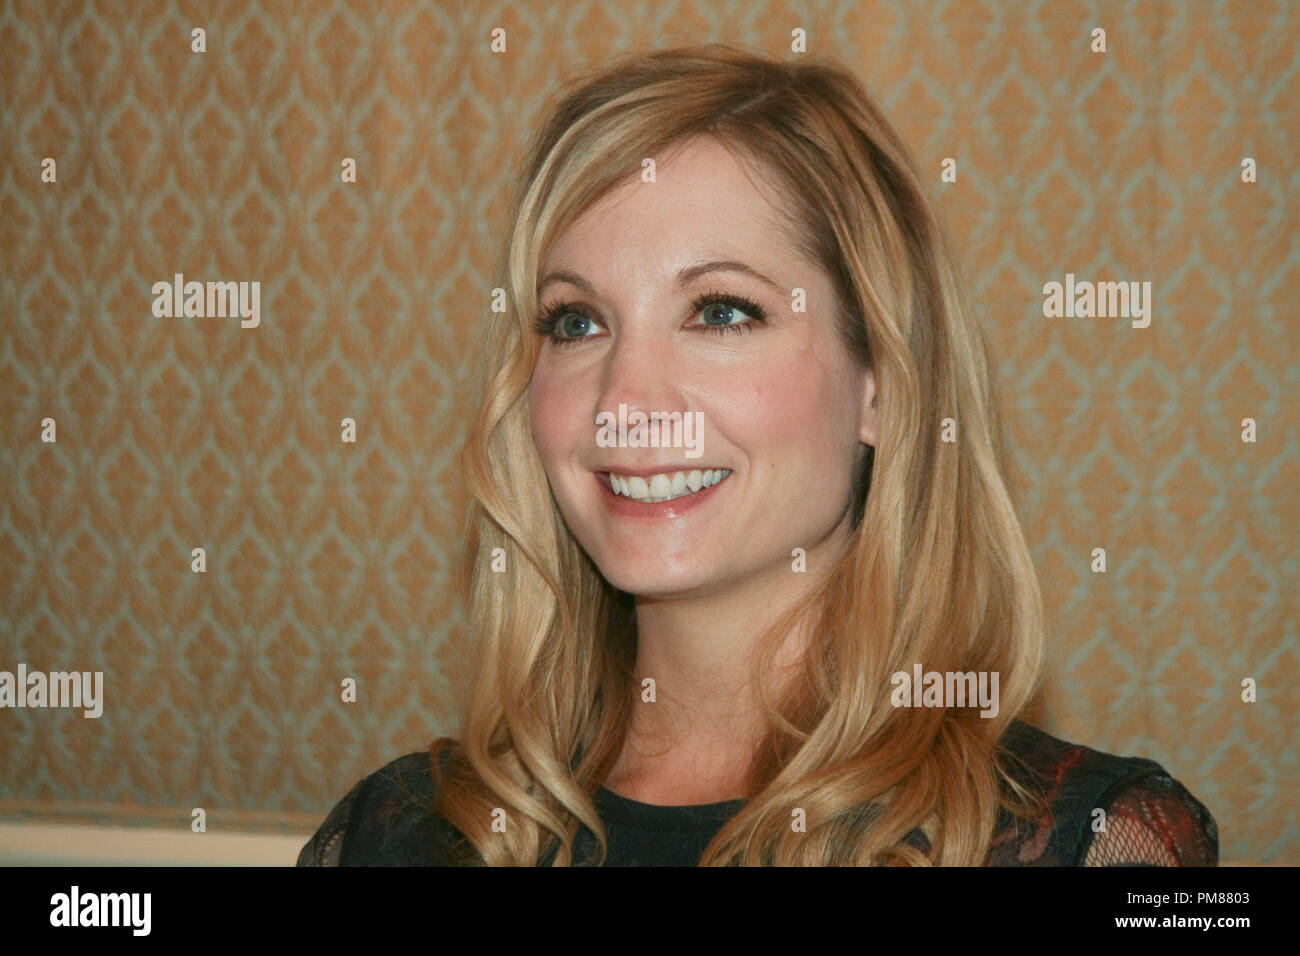 Joanne Froggatt   'Downton Abbey'  Portrait Session, July 22, 2012.  Reproduction by American tabloids is absolutely forbidden. File Reference # 31610_030JRC  For Editorial Use Only -  All Rights Reserved - Stock Image